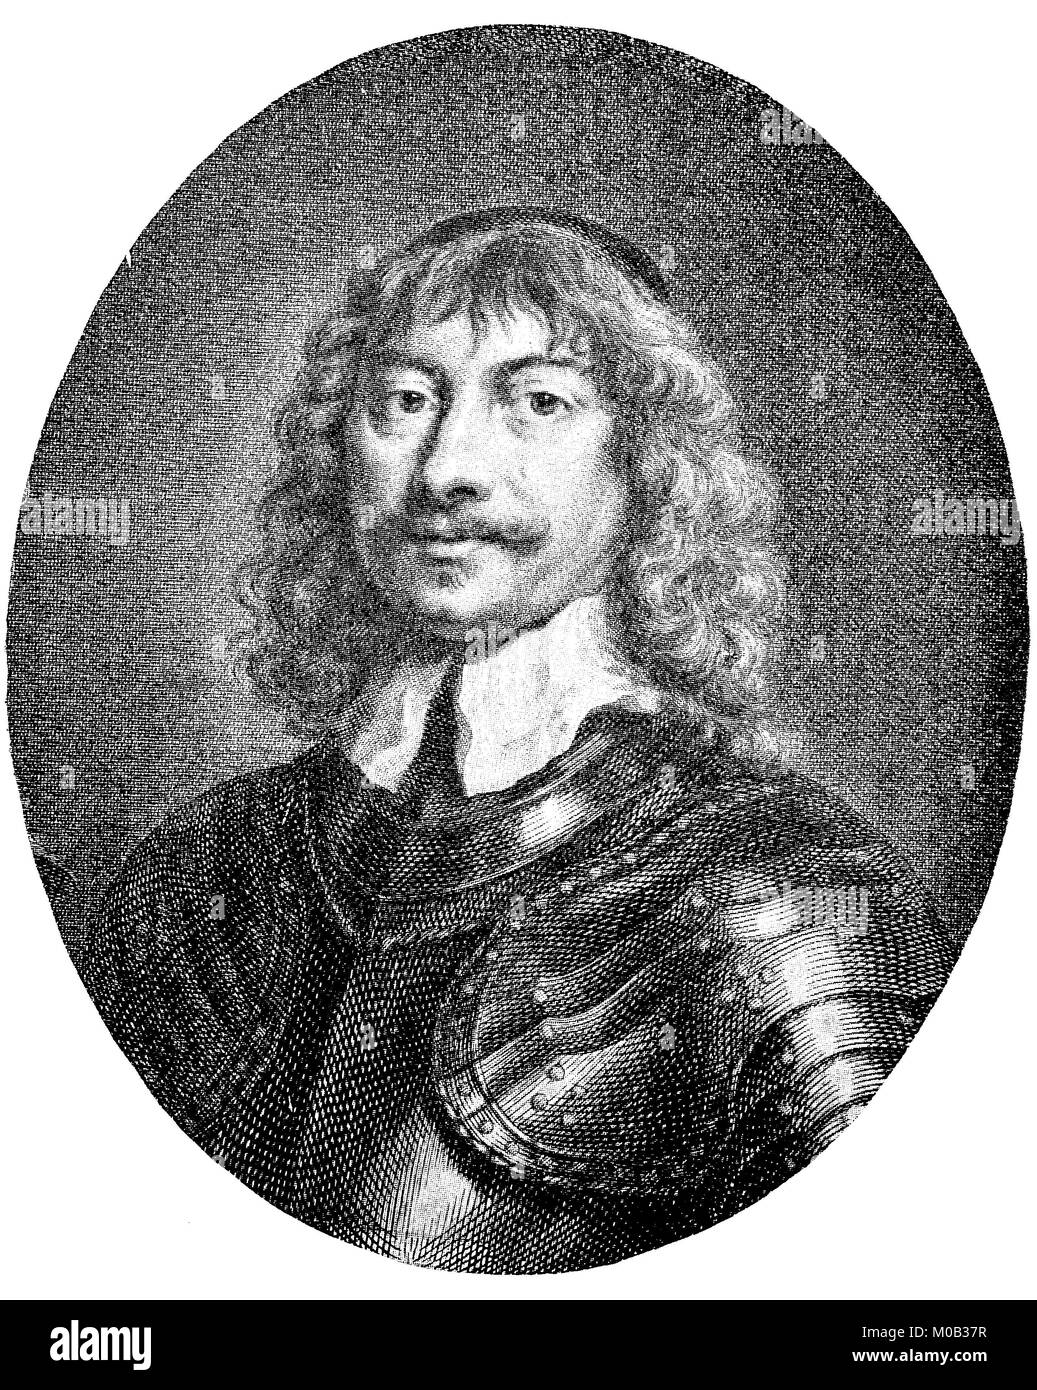 James Graham, 1st Marquess of Montrose, 1612-21 May 1650, was a Scottish nobleman who fought for the royal side Stock Photo